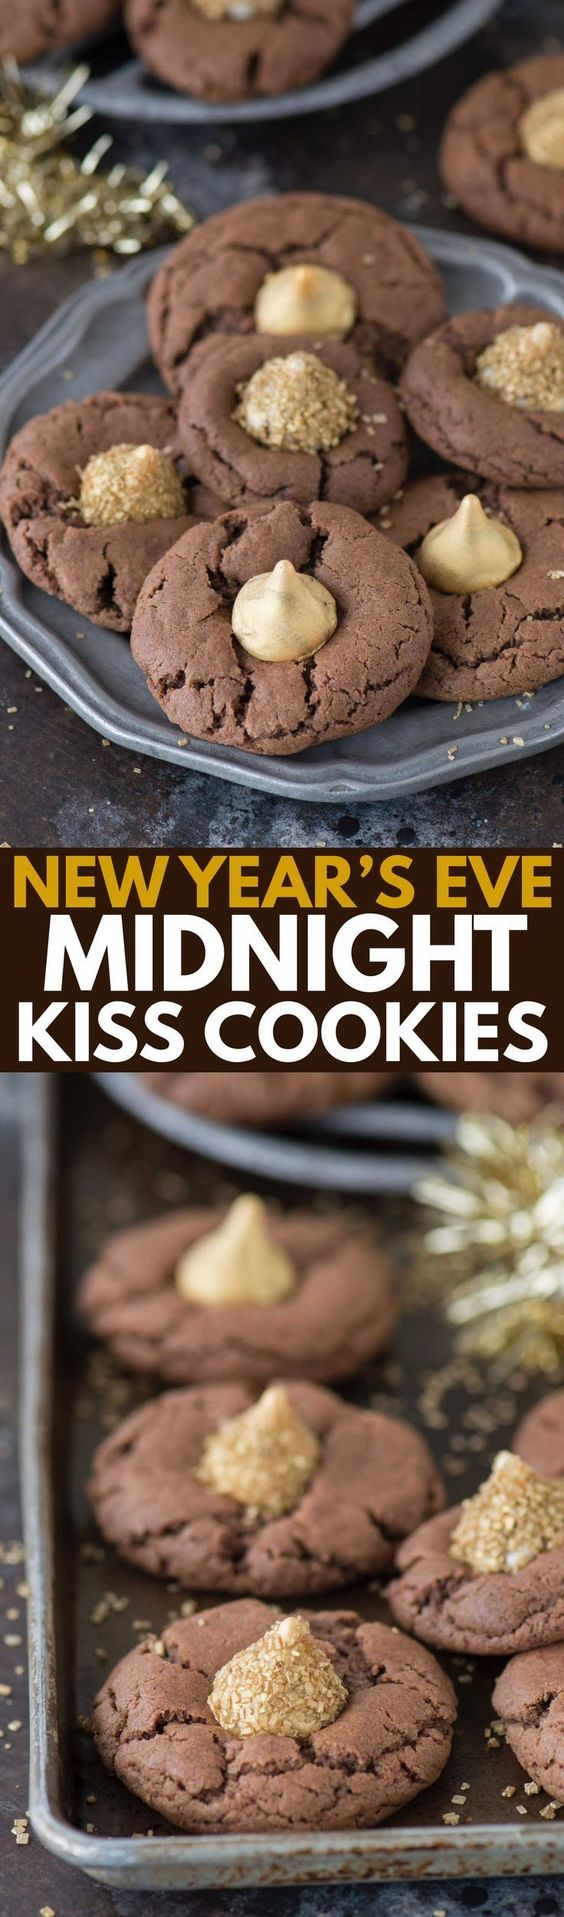 These Midnight Kiss Cookies are the best New Year's Eve cookie ...